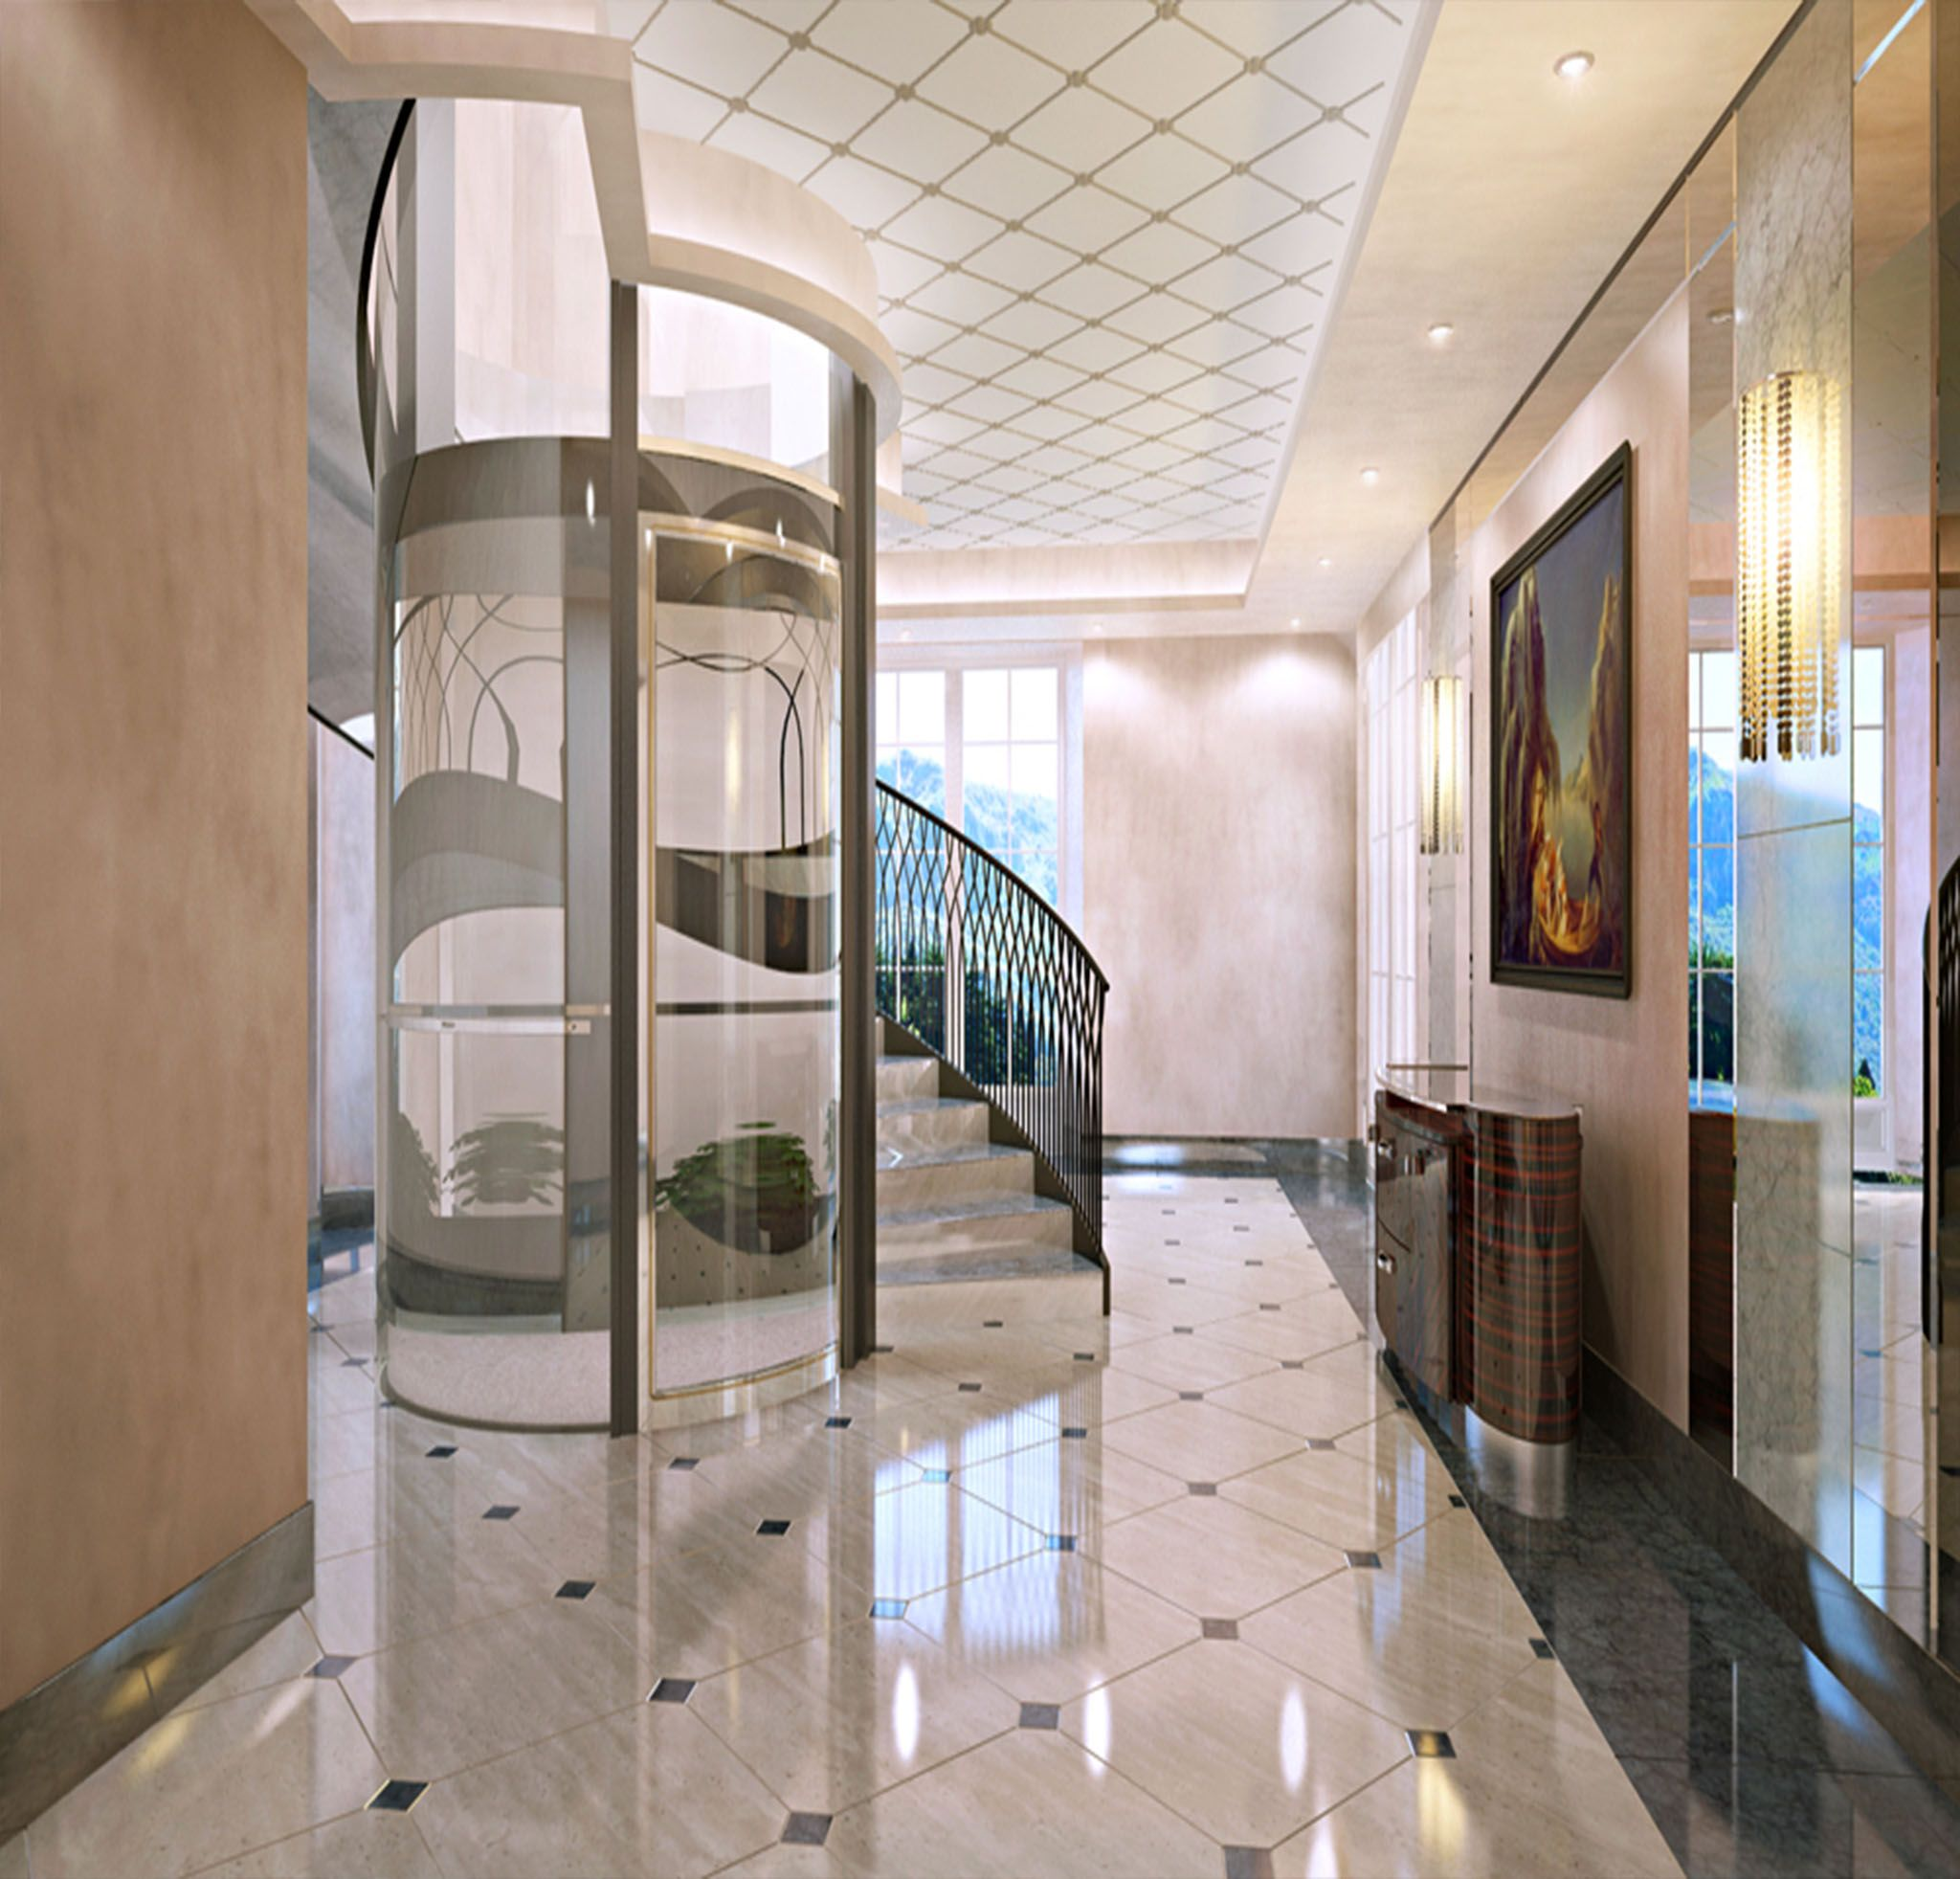 residential elevator designs and styles business directory and free referral service connecting you to home